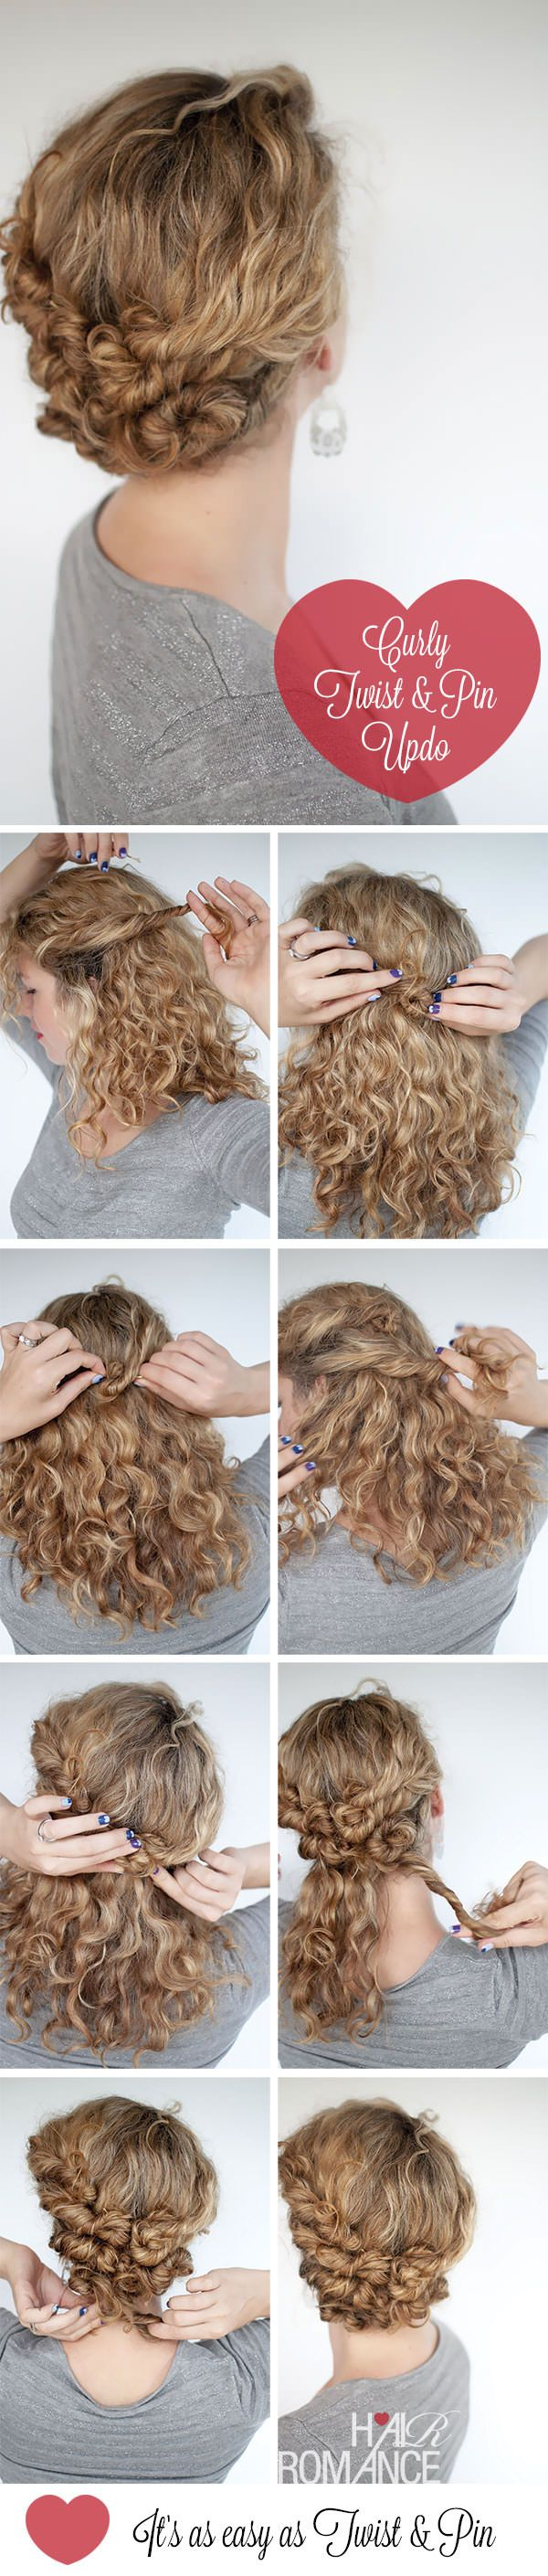 Twist and pin curly updoesh hairstyles pinterest hair